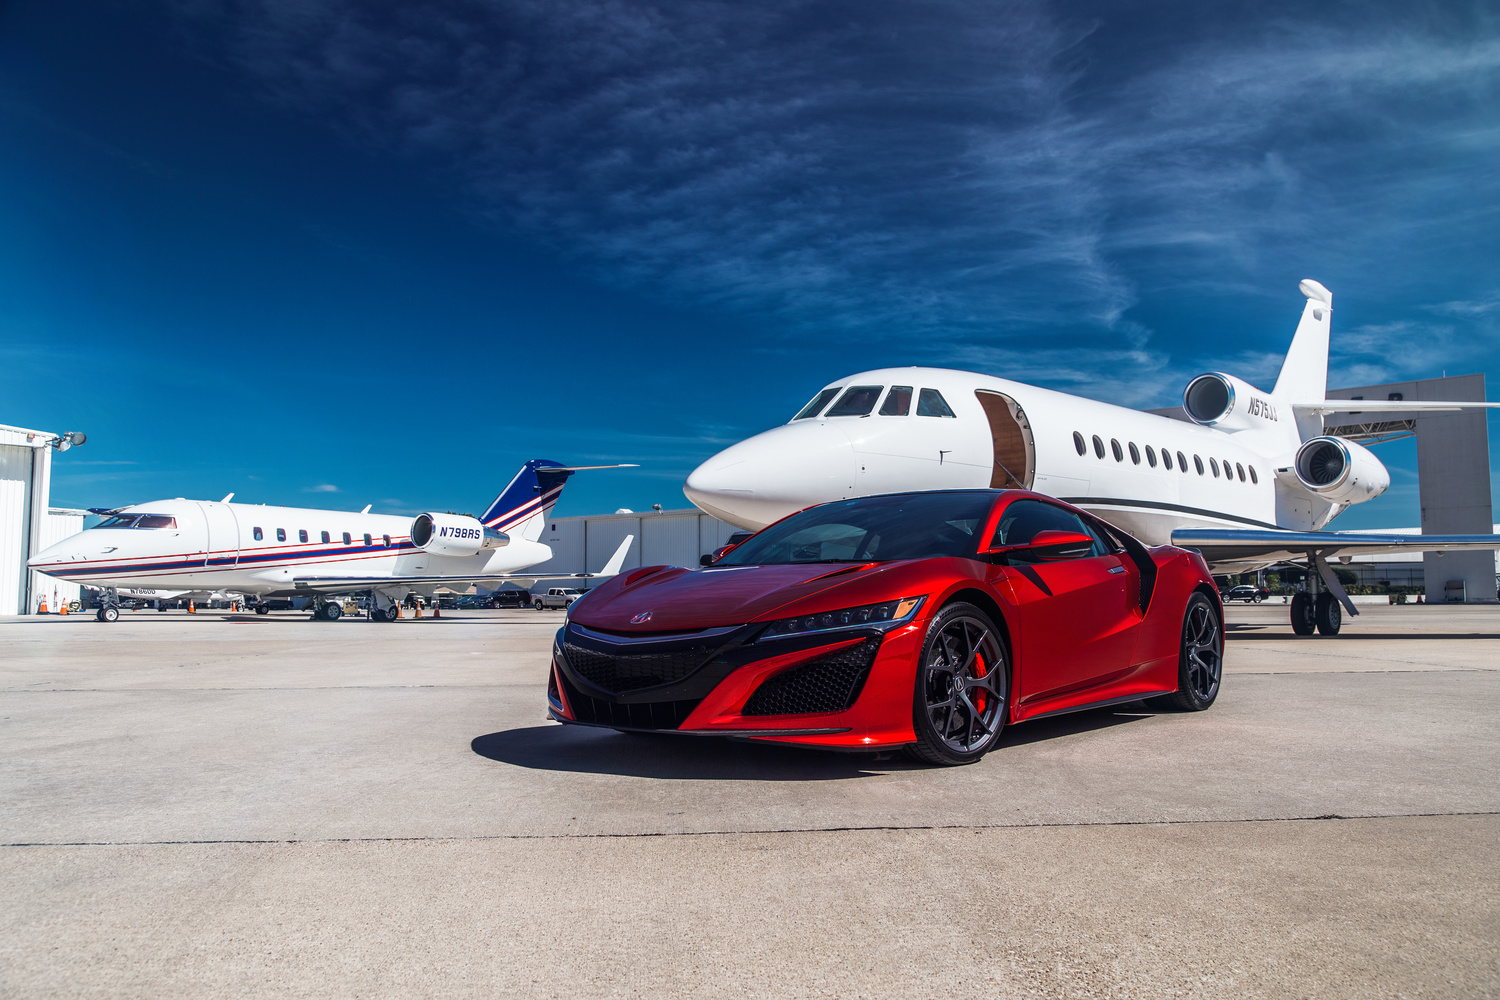 automotive photography aerial aviation pepper yandell